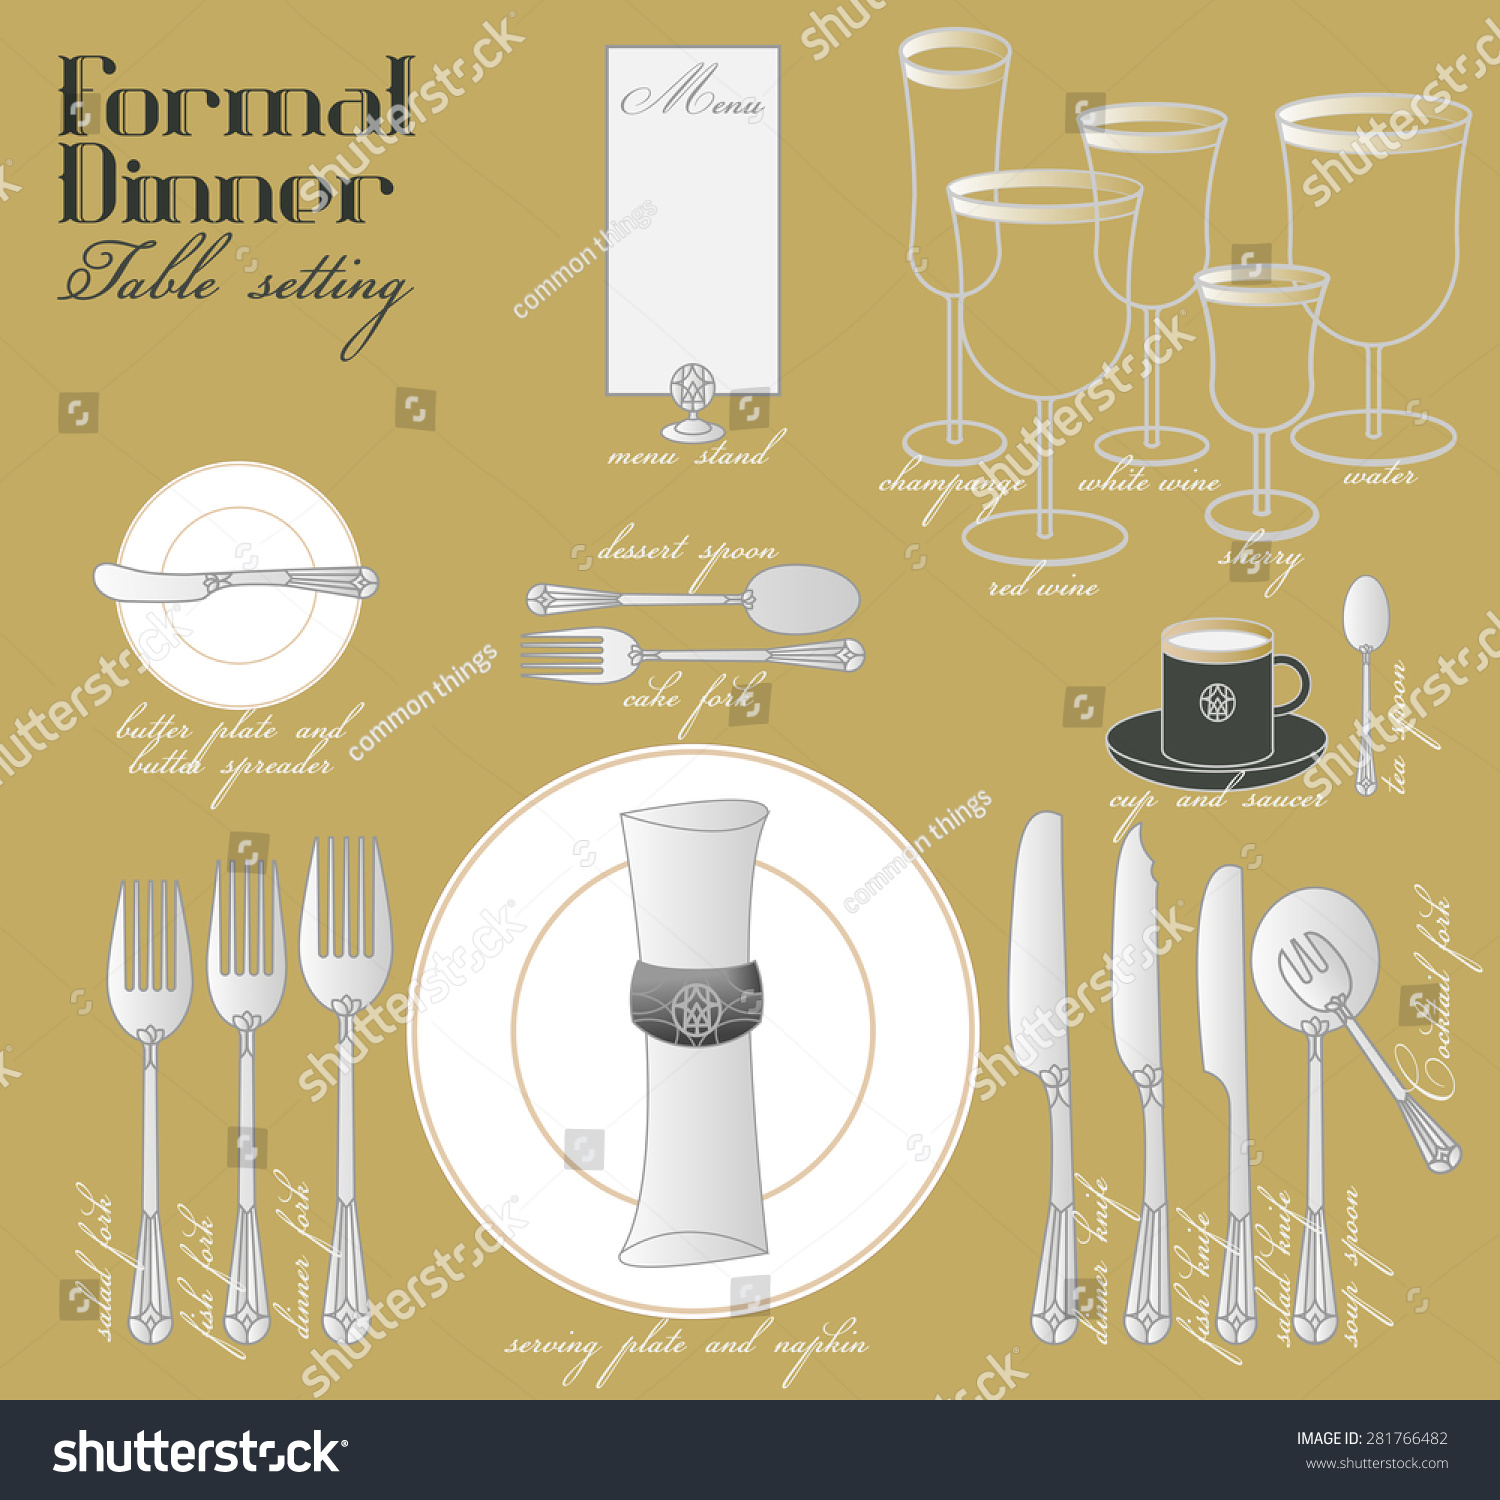 Elegant dinner table setting - Formal Dinner Table Setting Formal Dining With Elegant Table Decoration In Glamour Style Are Arrange For